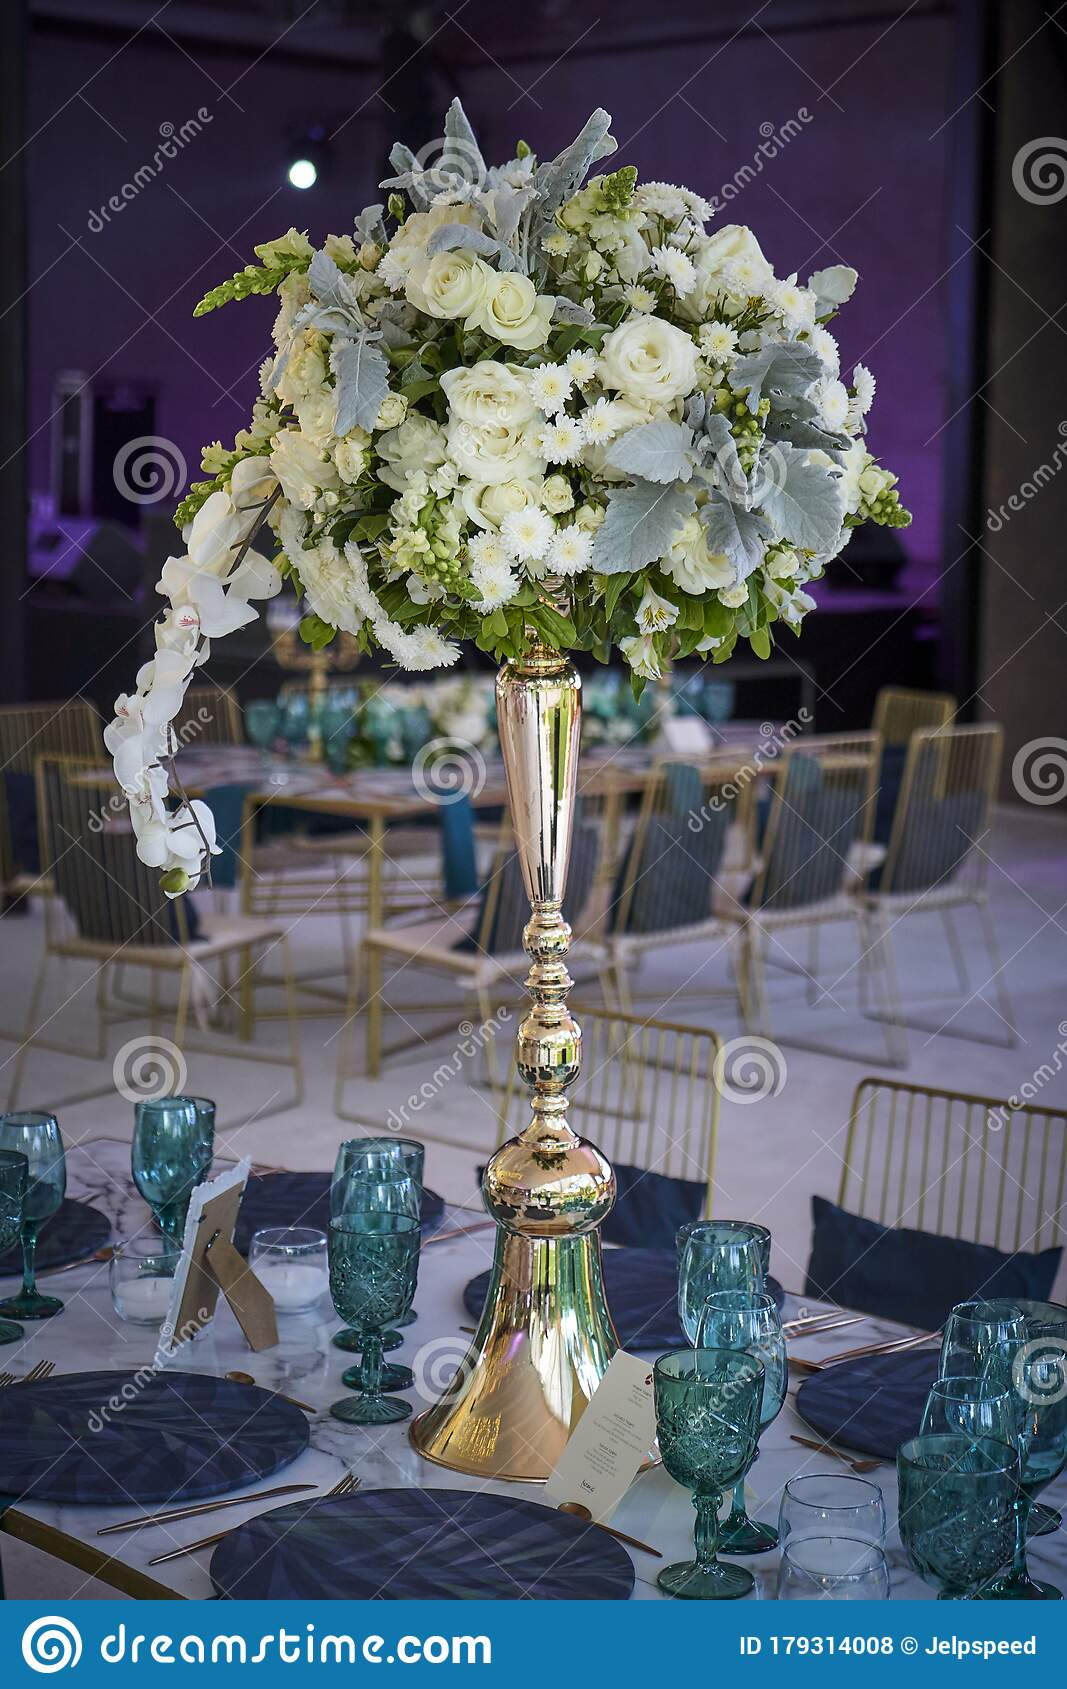 Wedding Decoration On Table Floral Arrangements And Decoration Arrangement Of Pink And White Flowers In Restaurant For Event Stock Photo Image Of Small Light 179314008